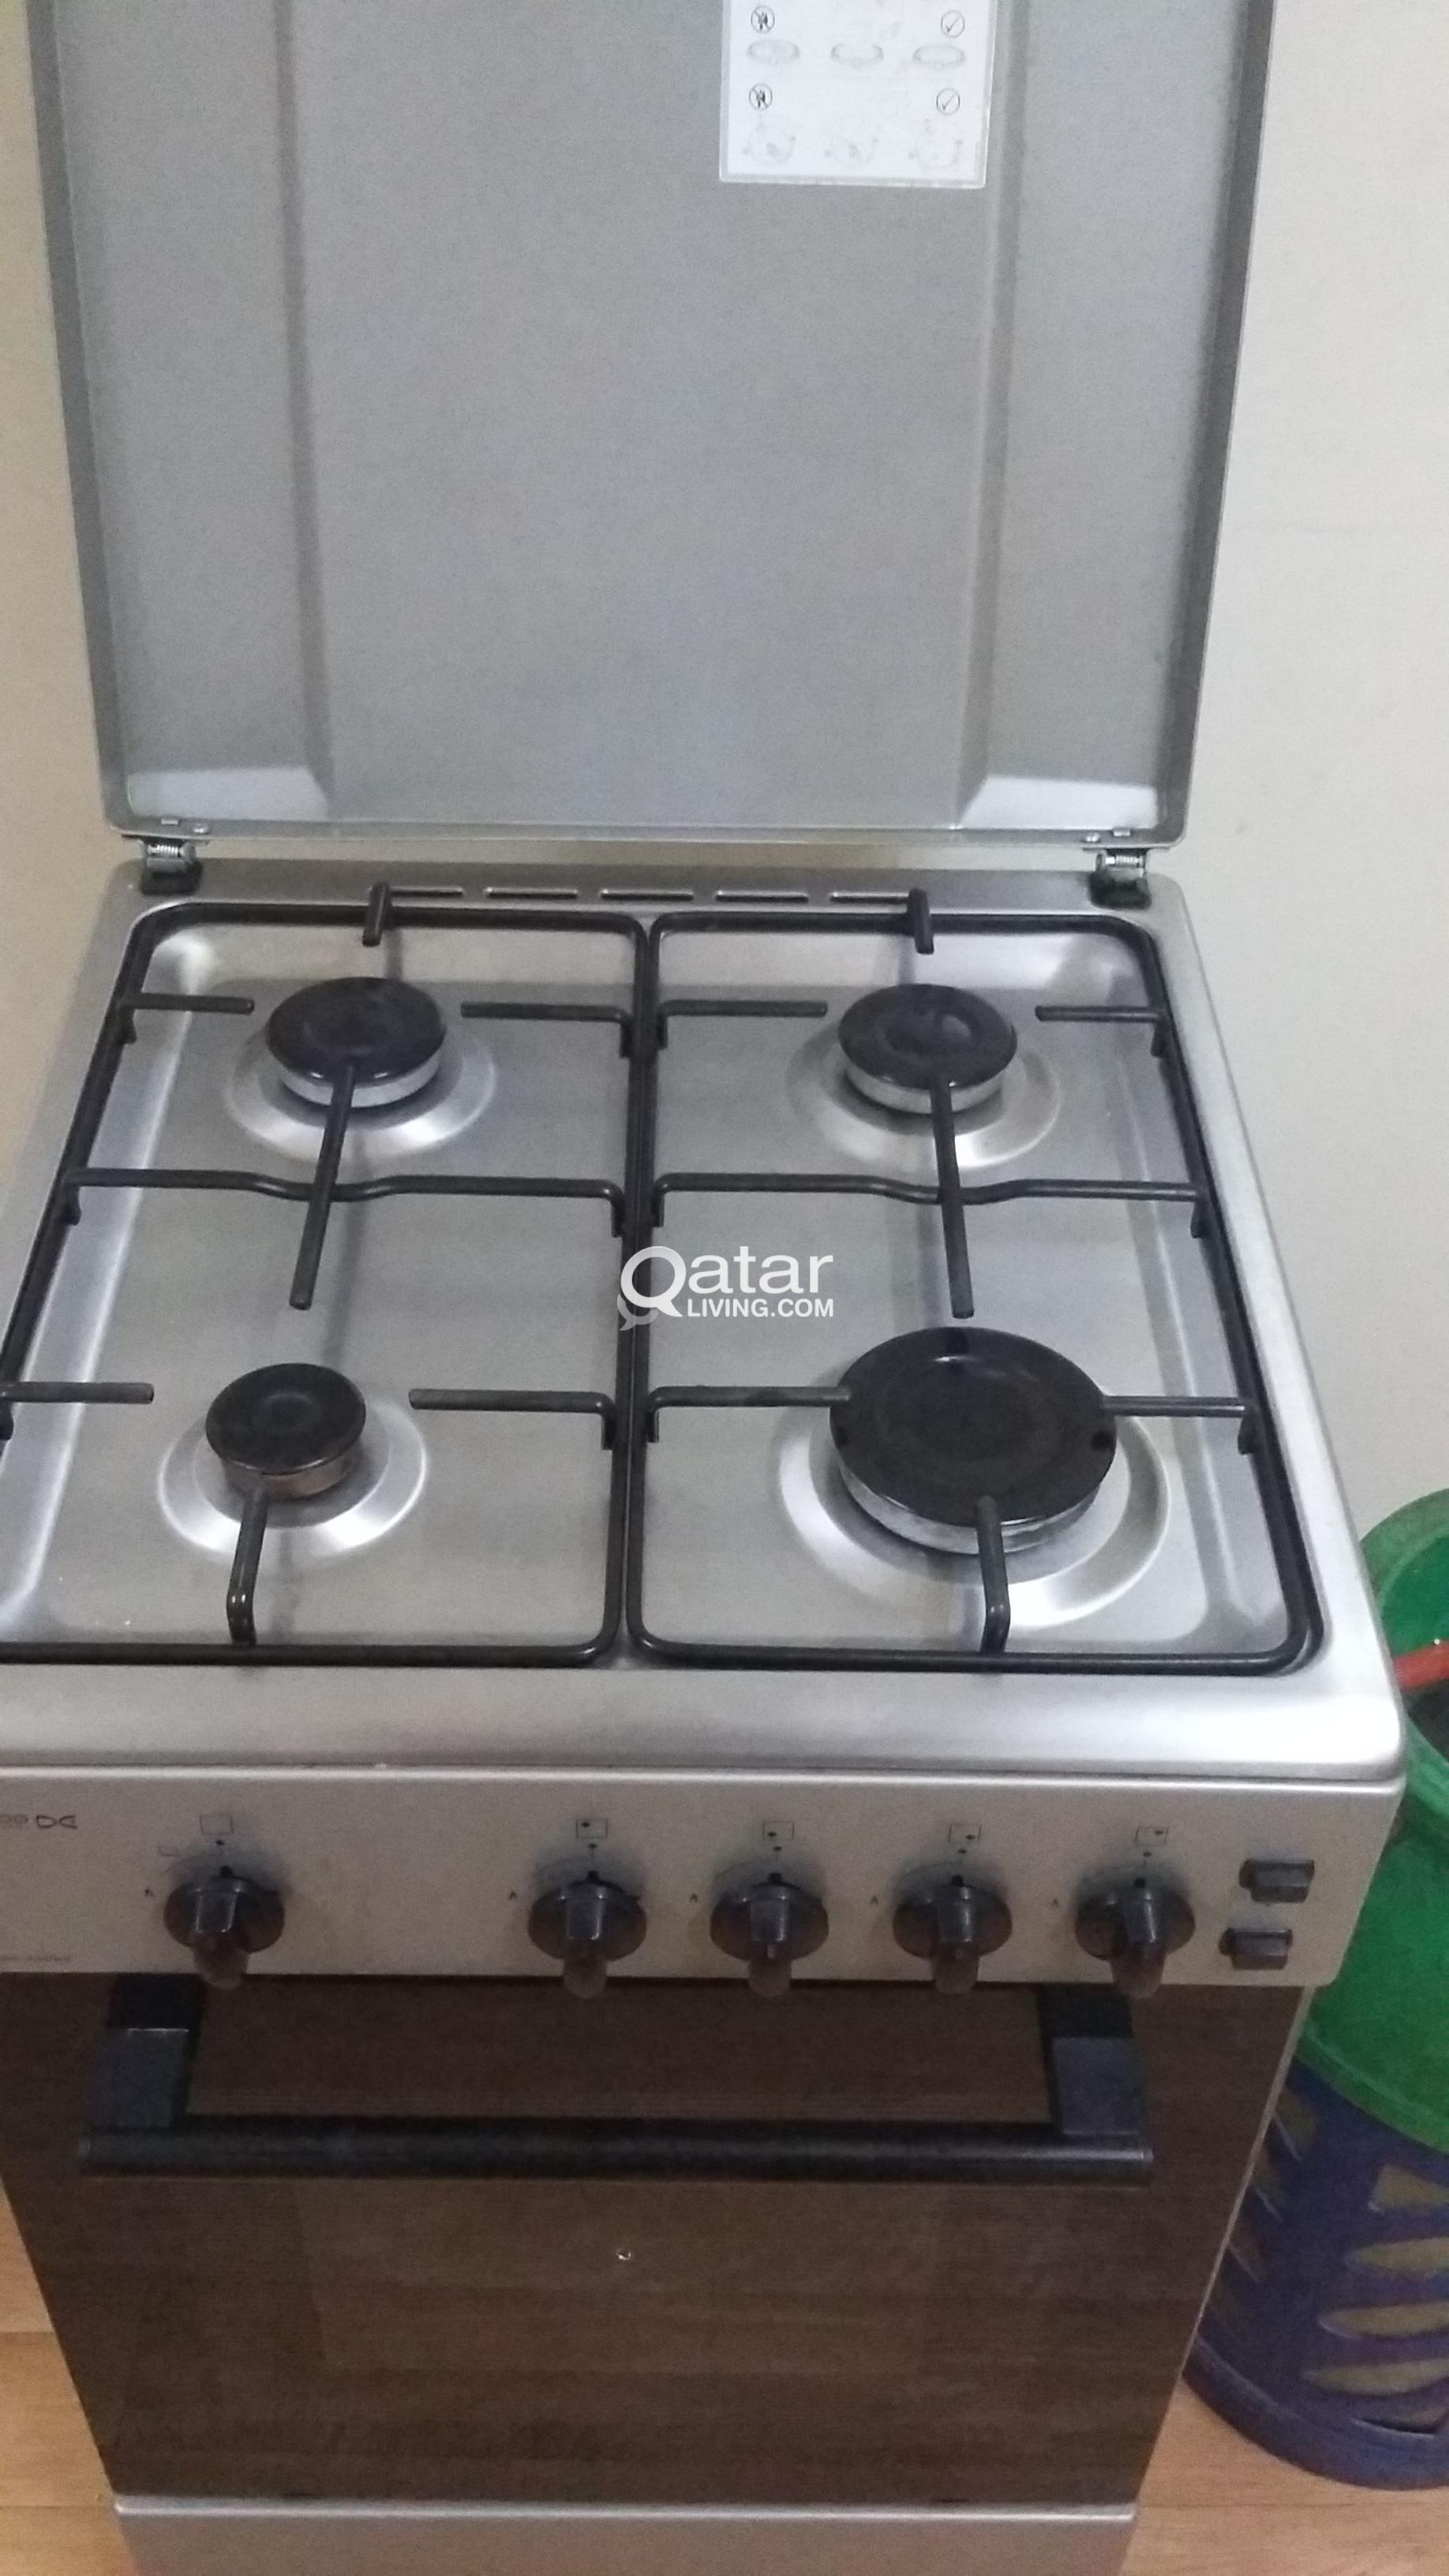 DAEWOO GAS COOKER WITH OVEN + GAS CYLINDER | Qatar Living